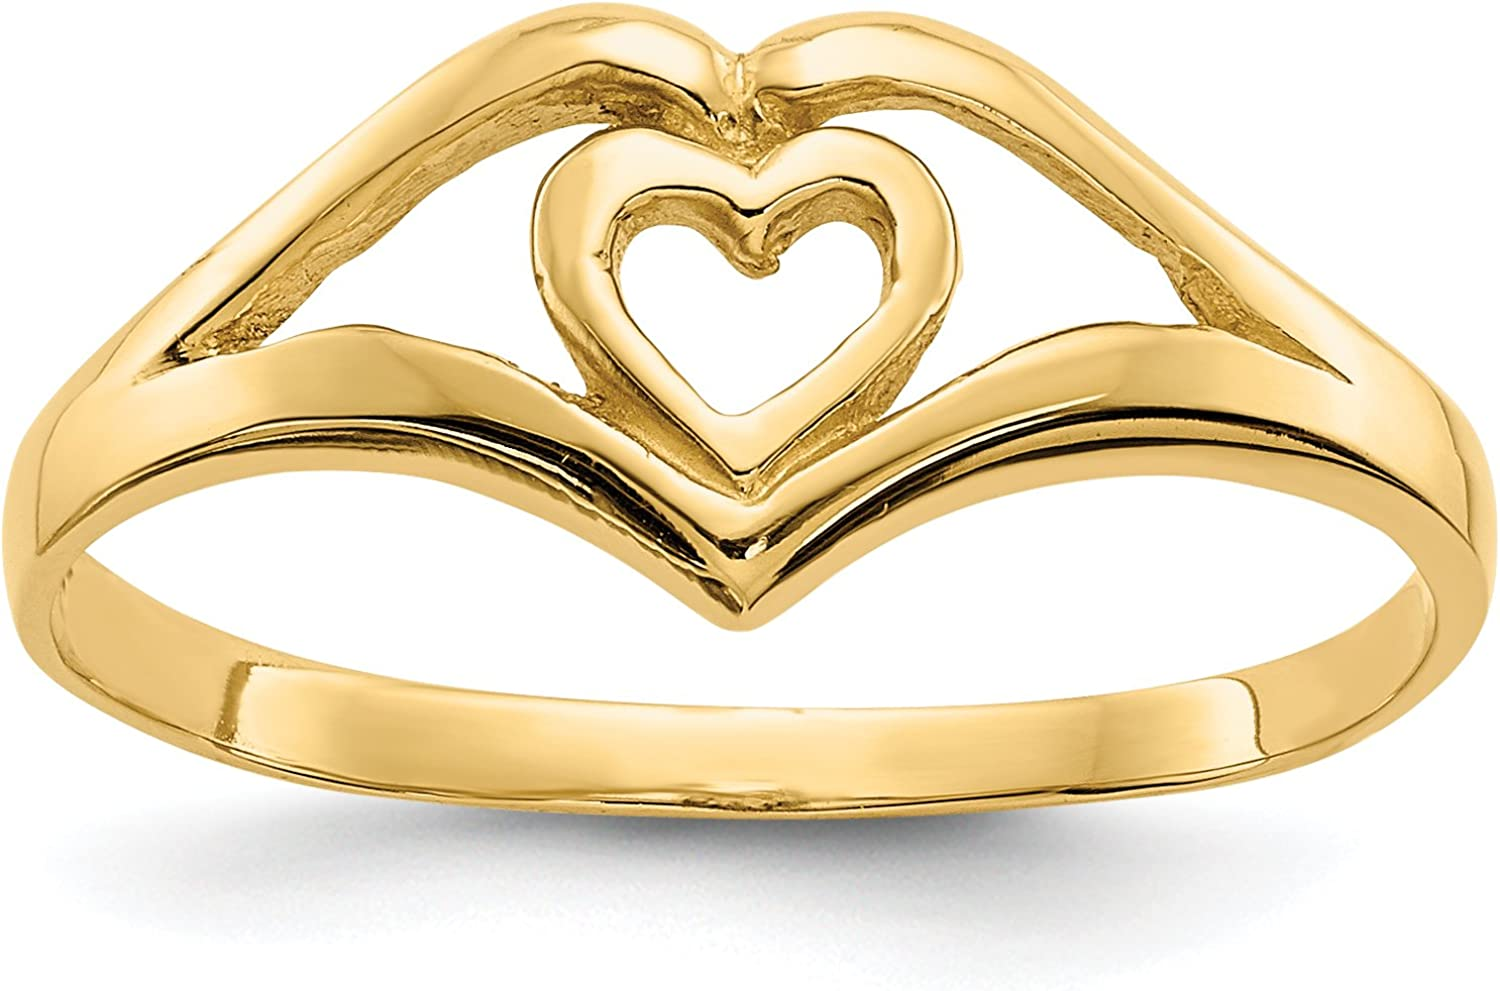 14k Yellow gold Double Heart Ring for Women Size 7.5